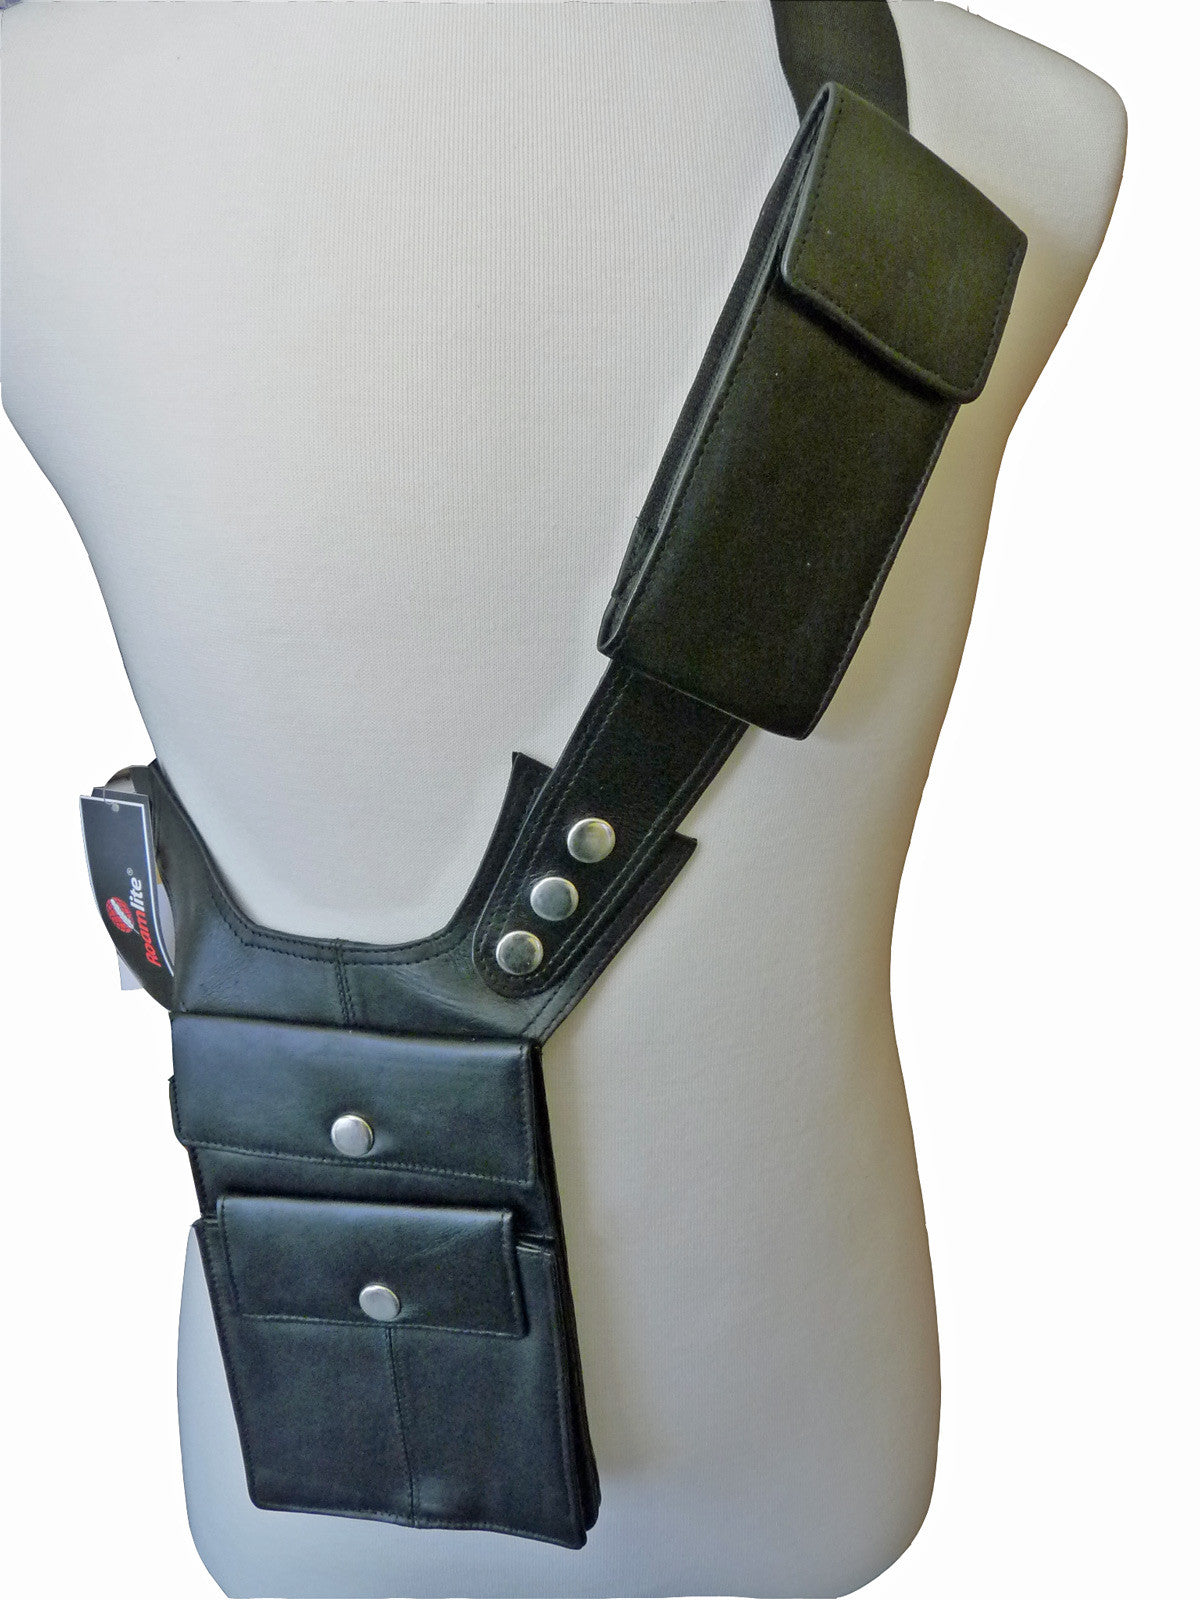 Shoulder Under Arm Holster Travel Bag Black RL705 MODEL VIEW 2